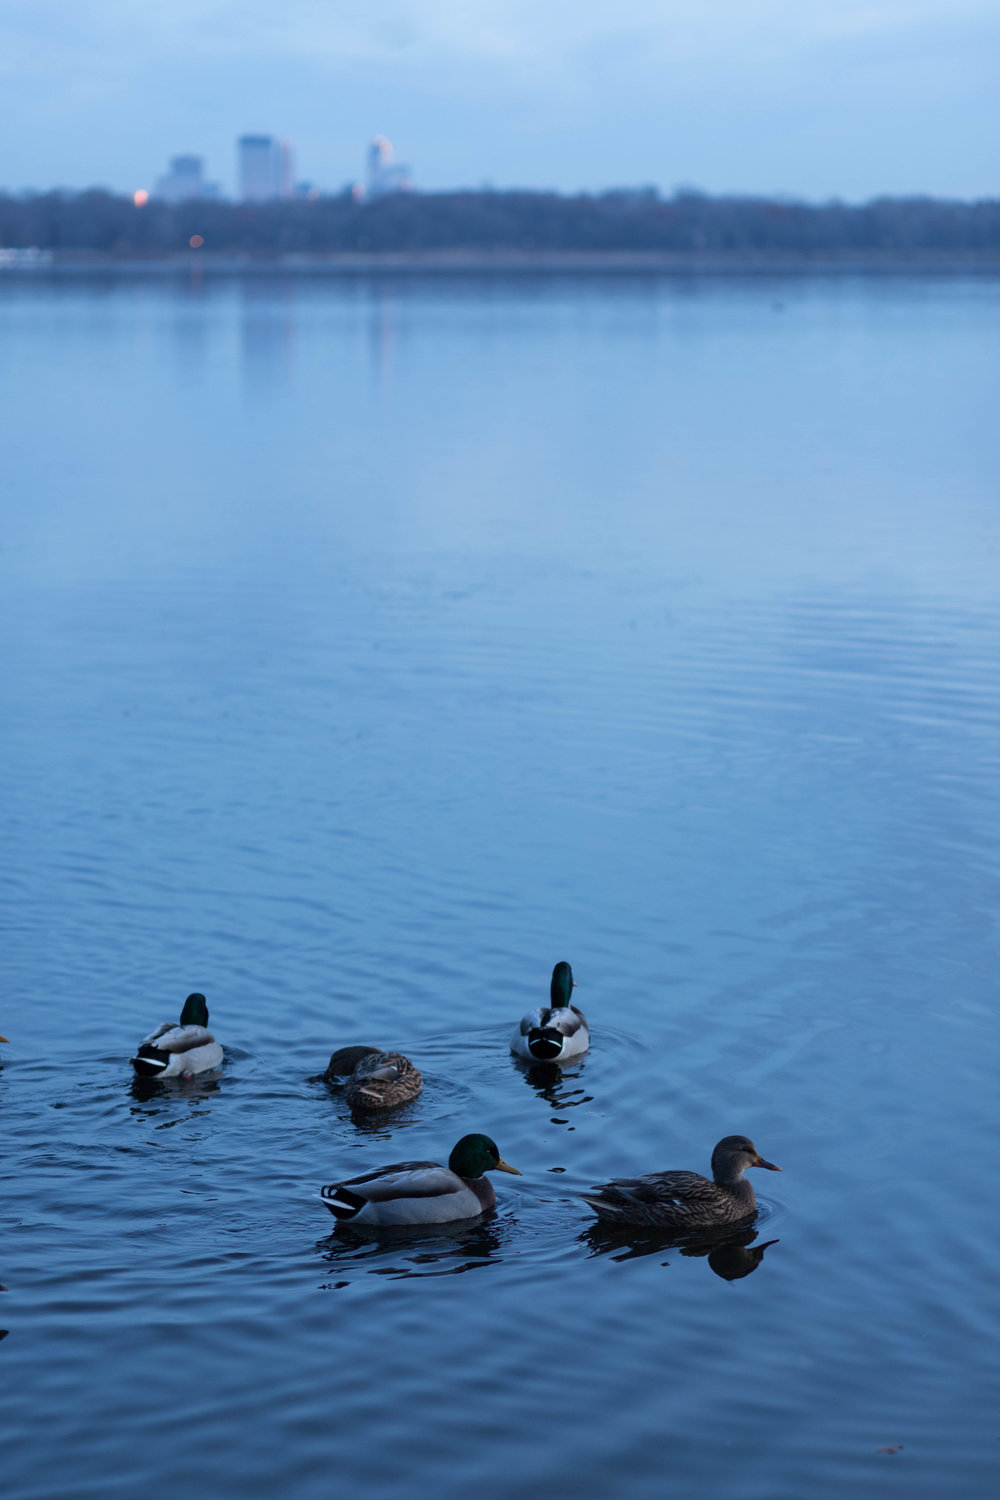 city ducks - lake harriet, minneapolis